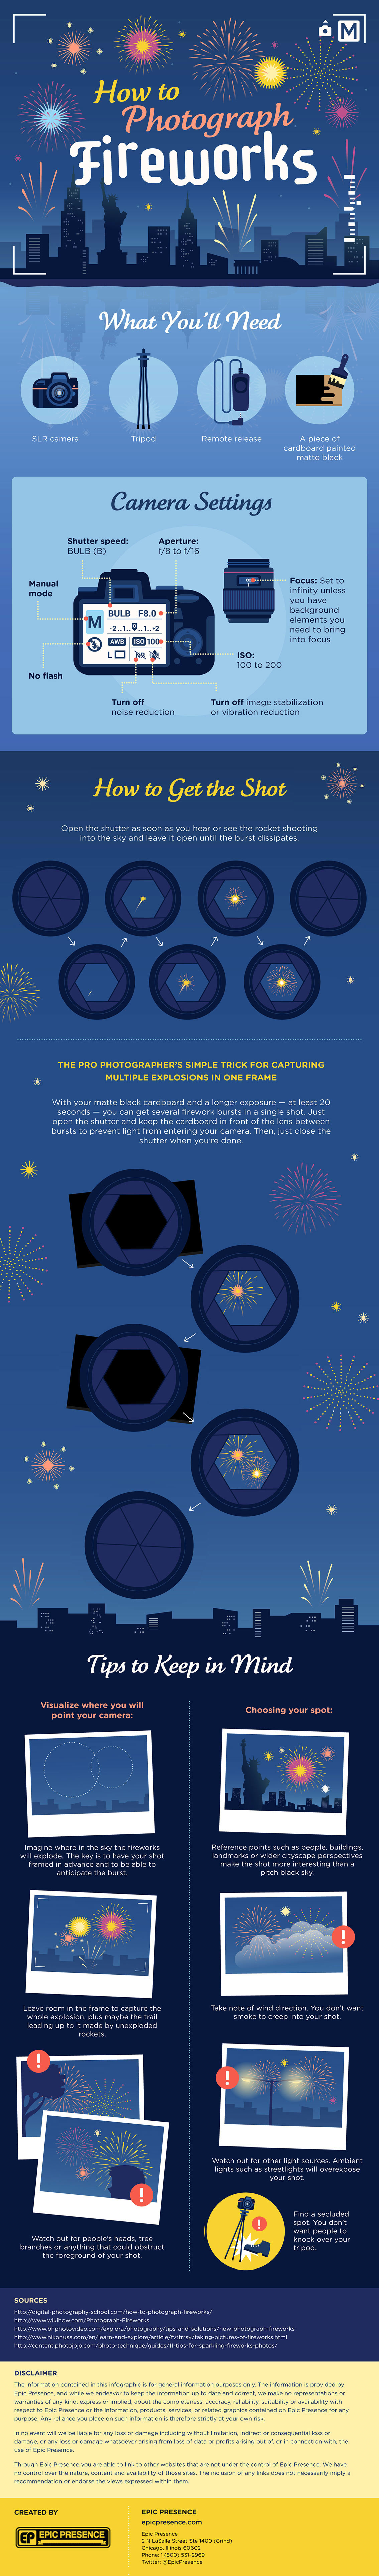 Best Camera Settings for Fireworks Photography Infographic